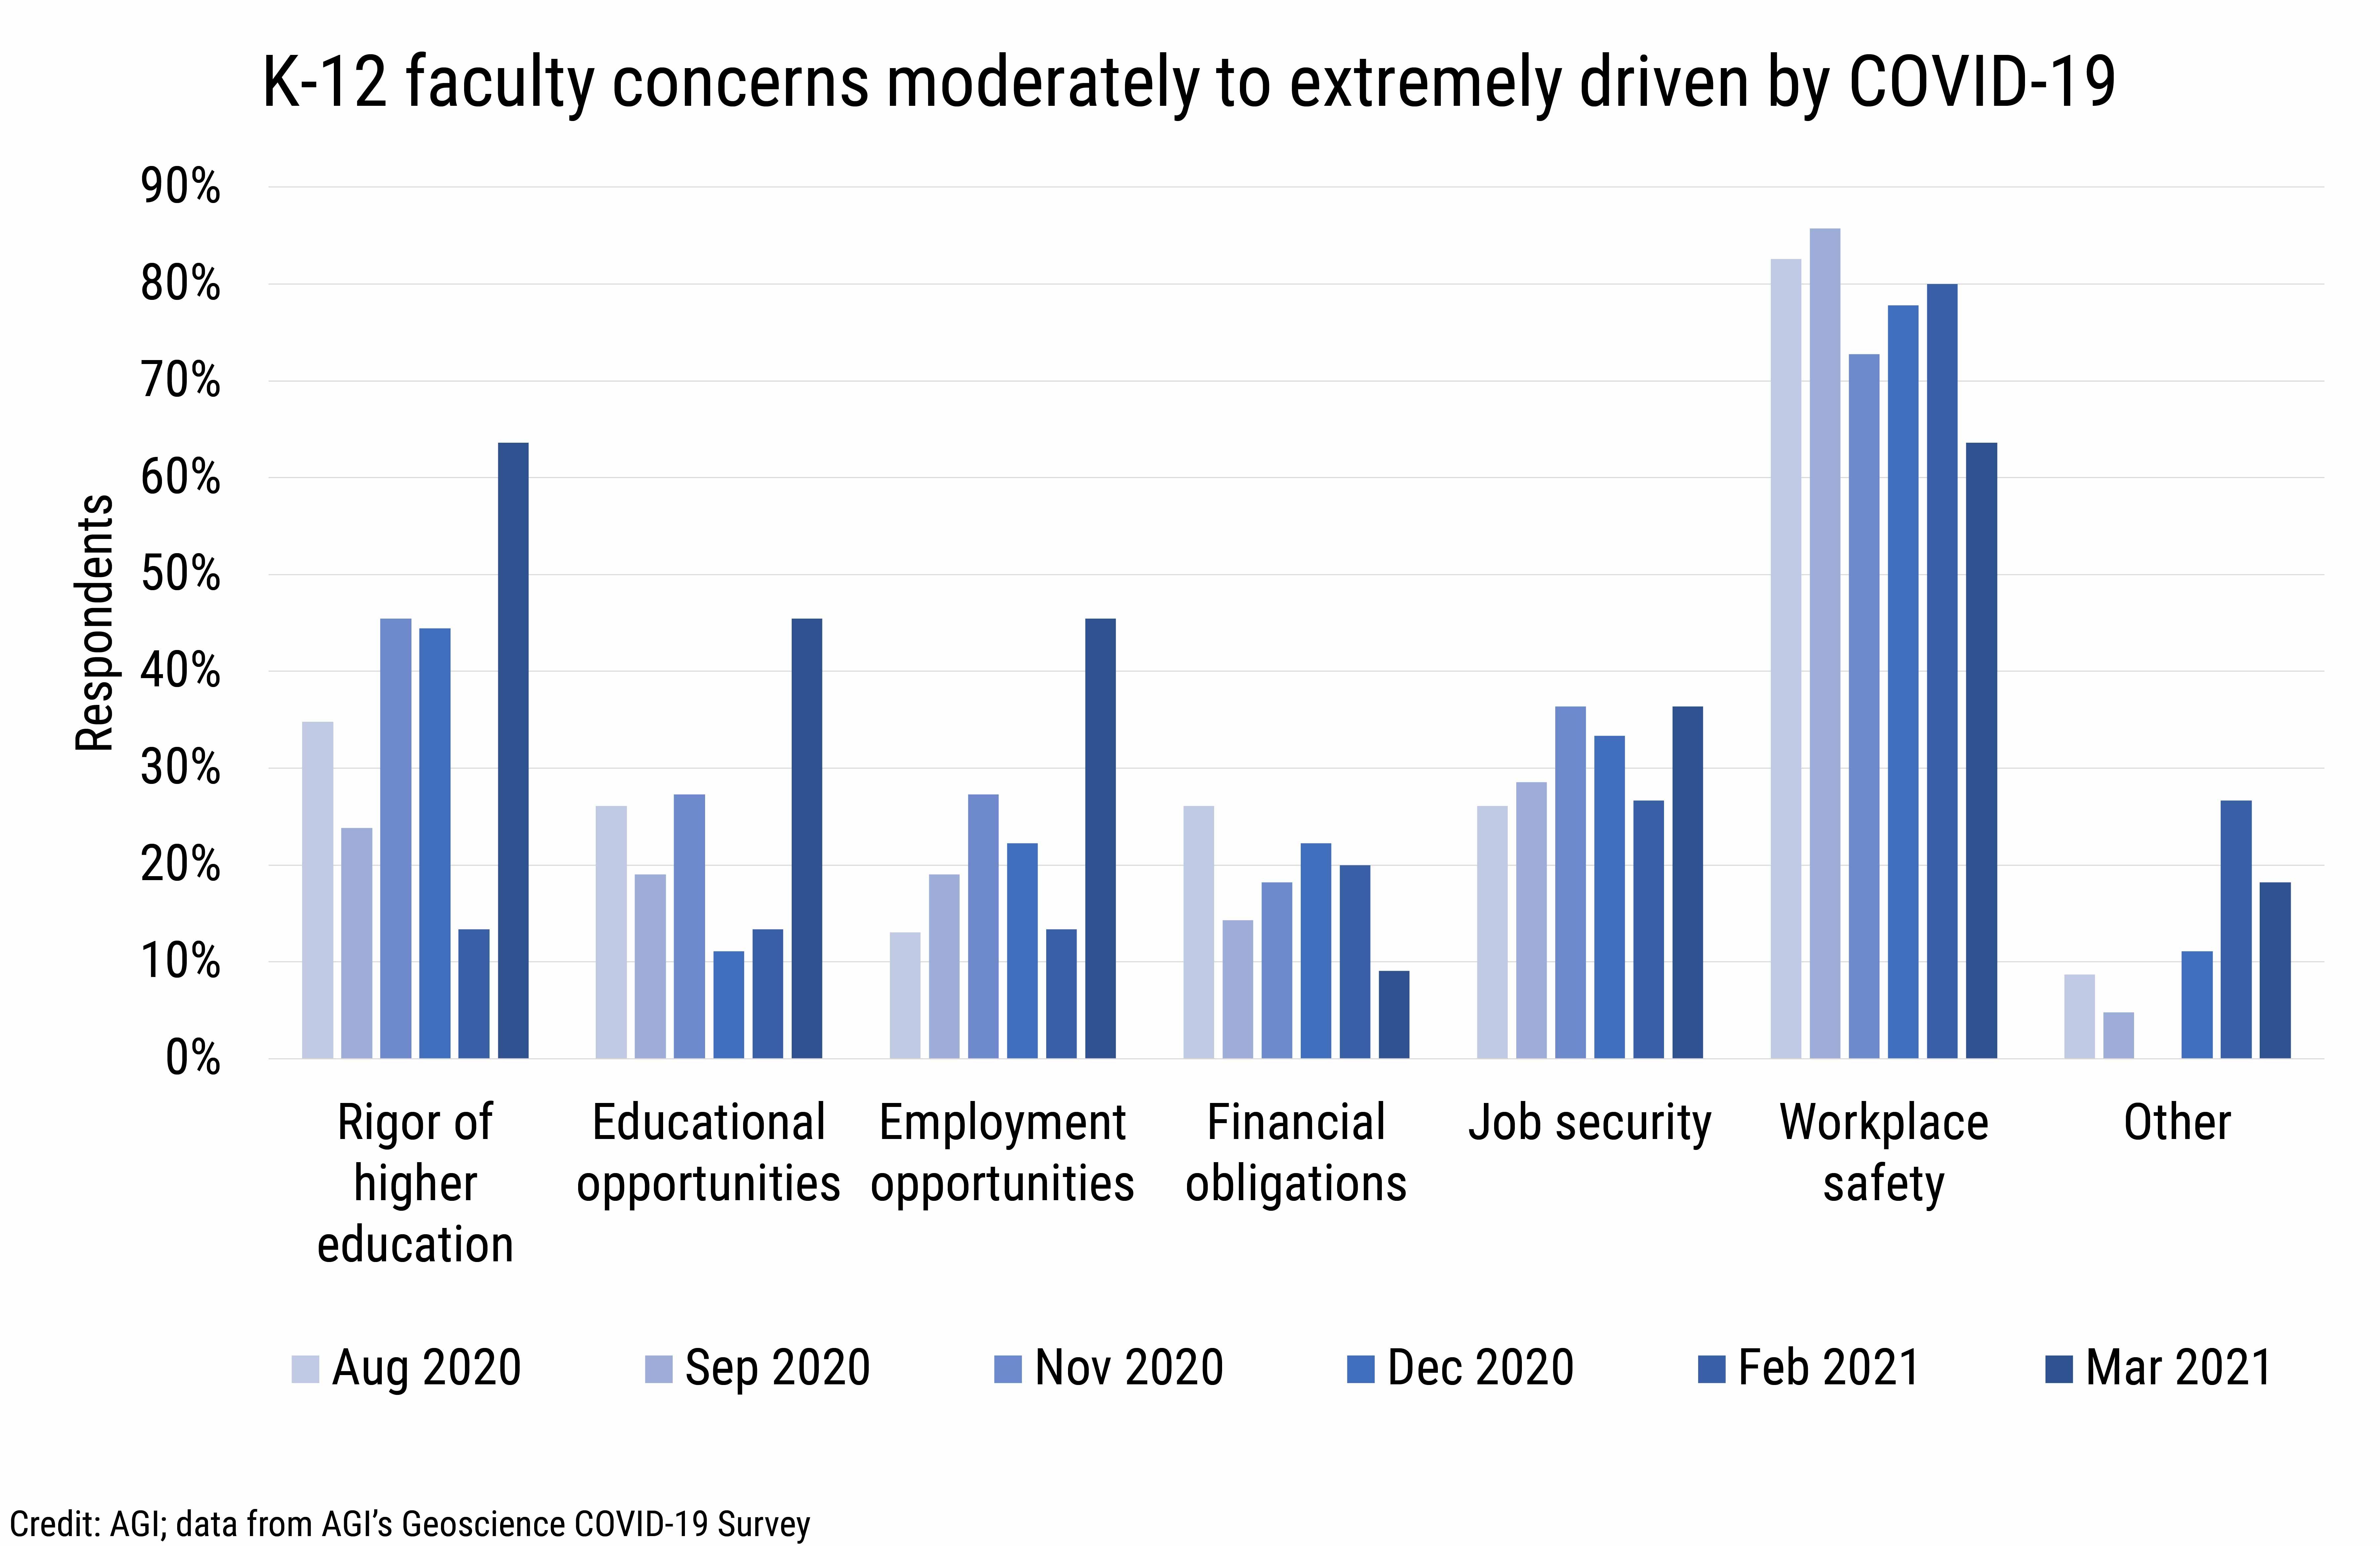 DB_2021-013 chart 08: K-12 faculty concerns moderately to extremely driven by COVID-19 (Credit: AGI; data from AGI's Geoscience COVID-19 Survey)